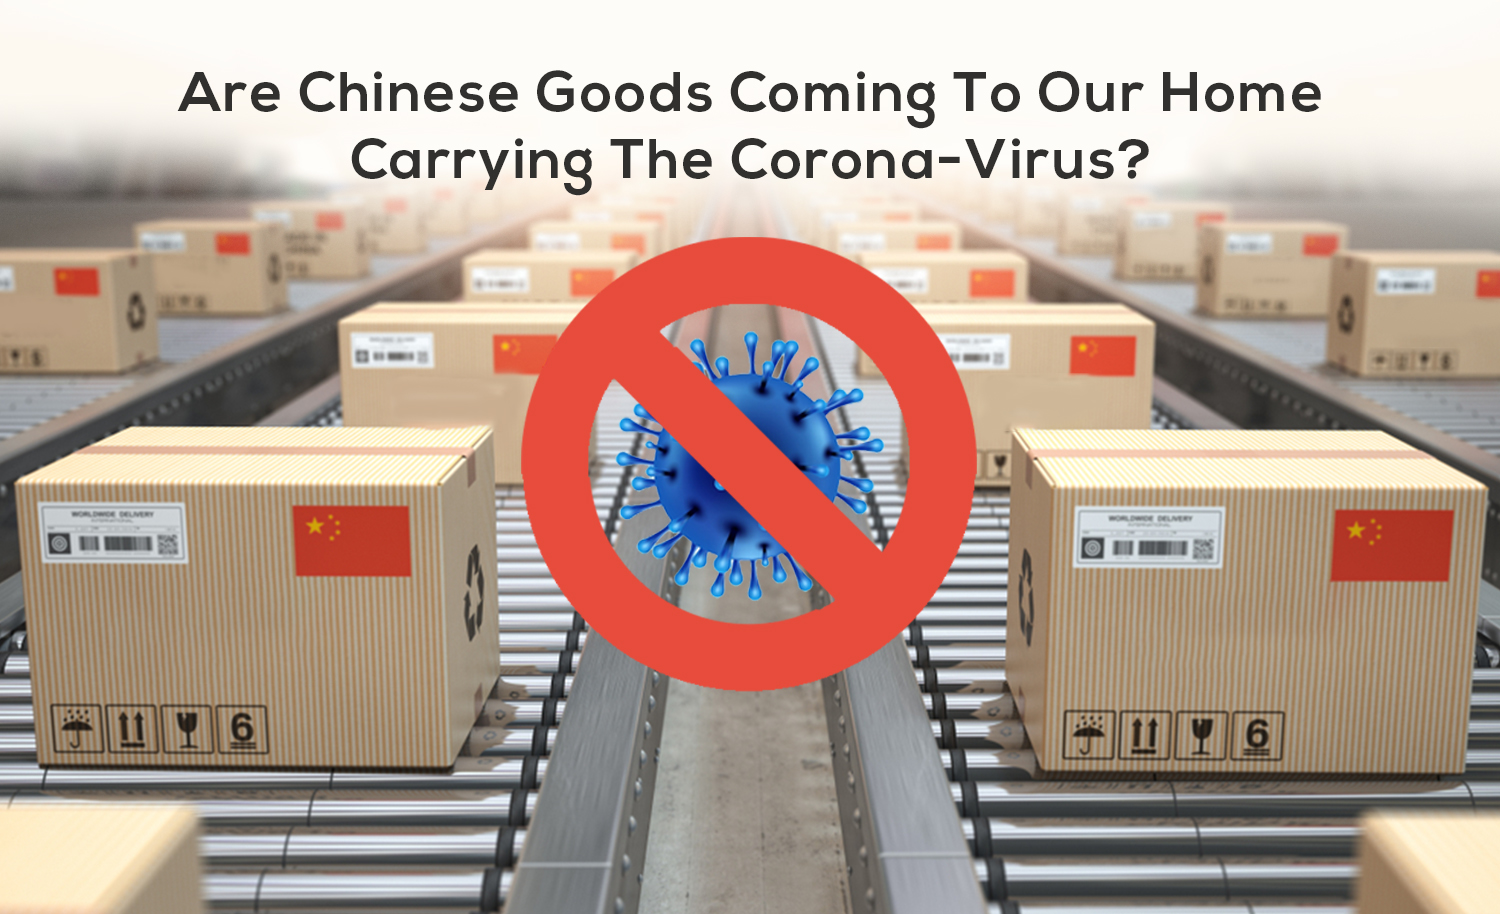 Are Chinese Goods Coming To Our Home Carrying The Coronavirus?